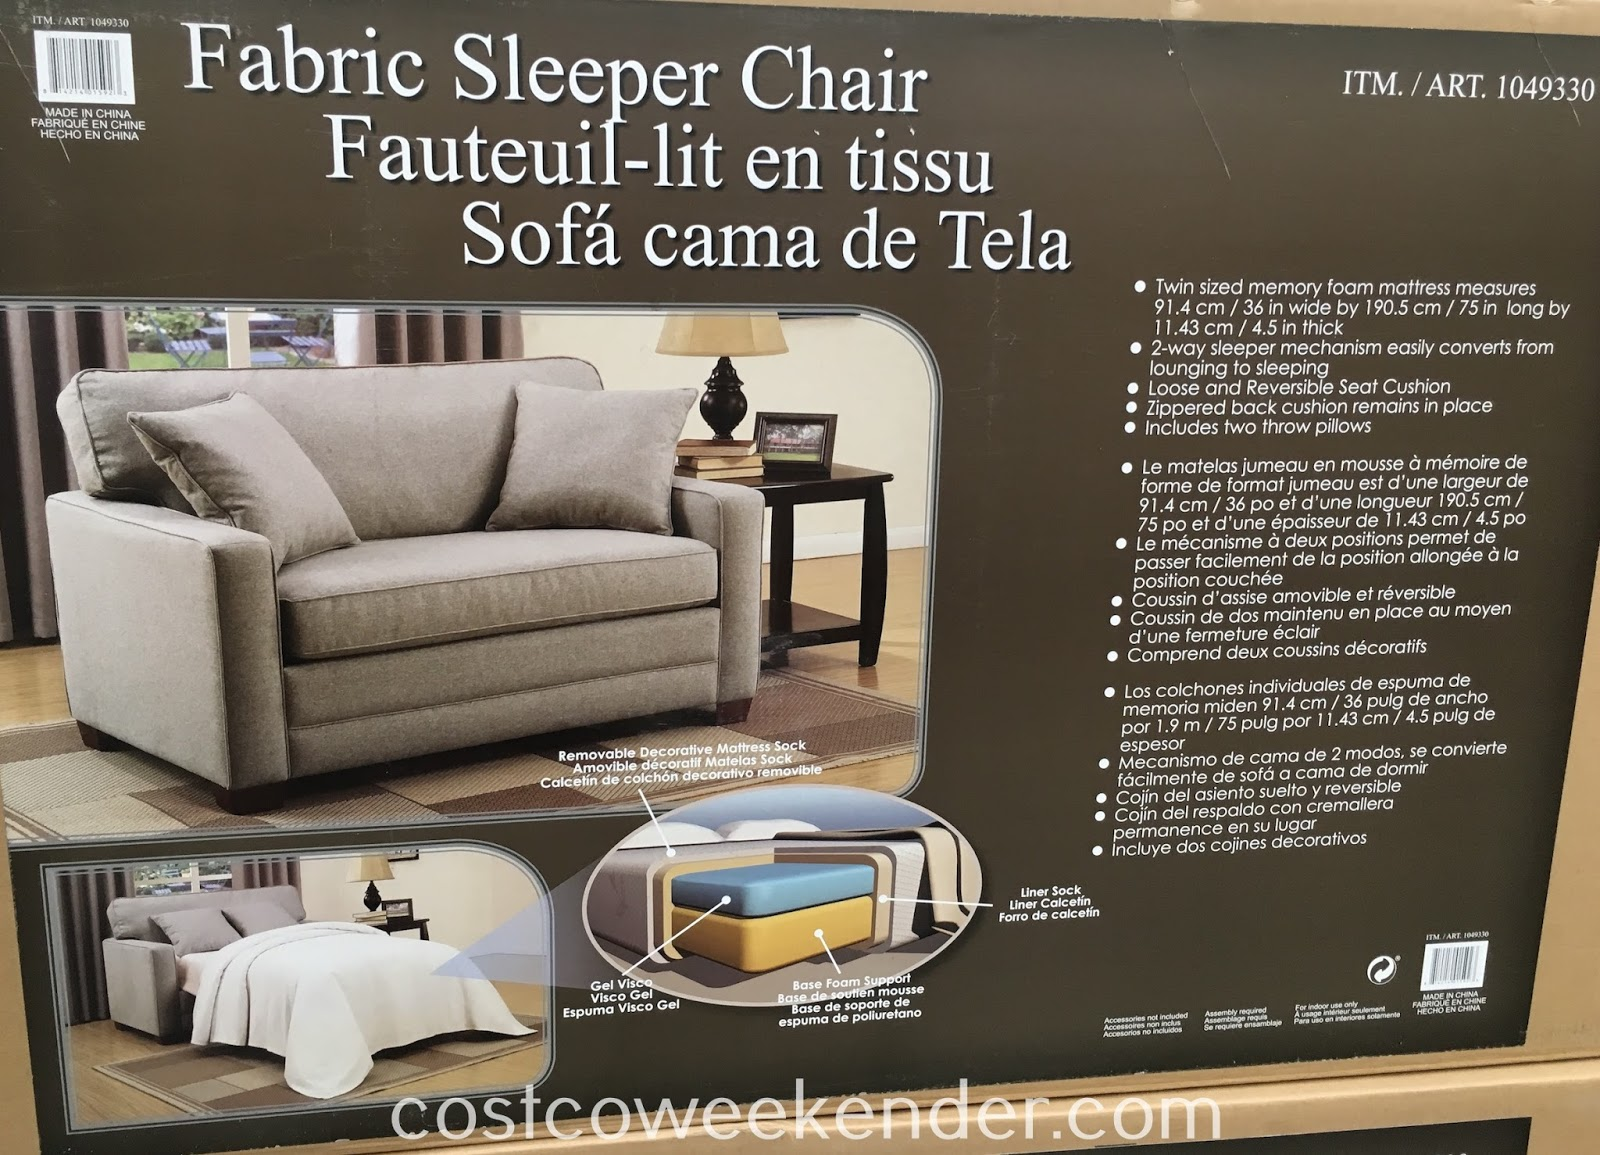 Synergy Home Fabric Sleeper Chair Costco Weekender